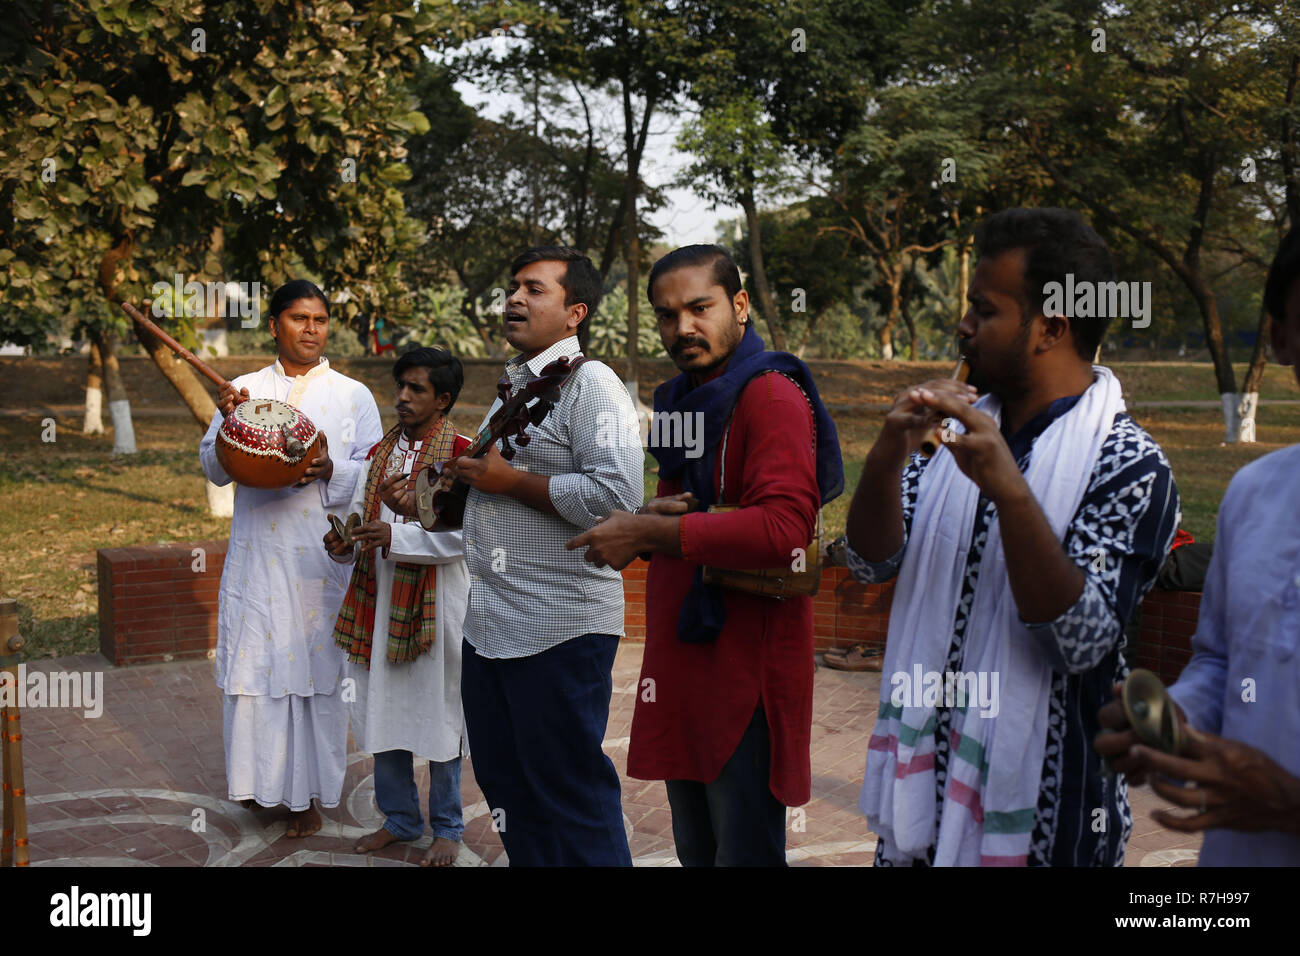 Dhaka, Bangladesh  10th Dec, 2018  Folk musicians perform